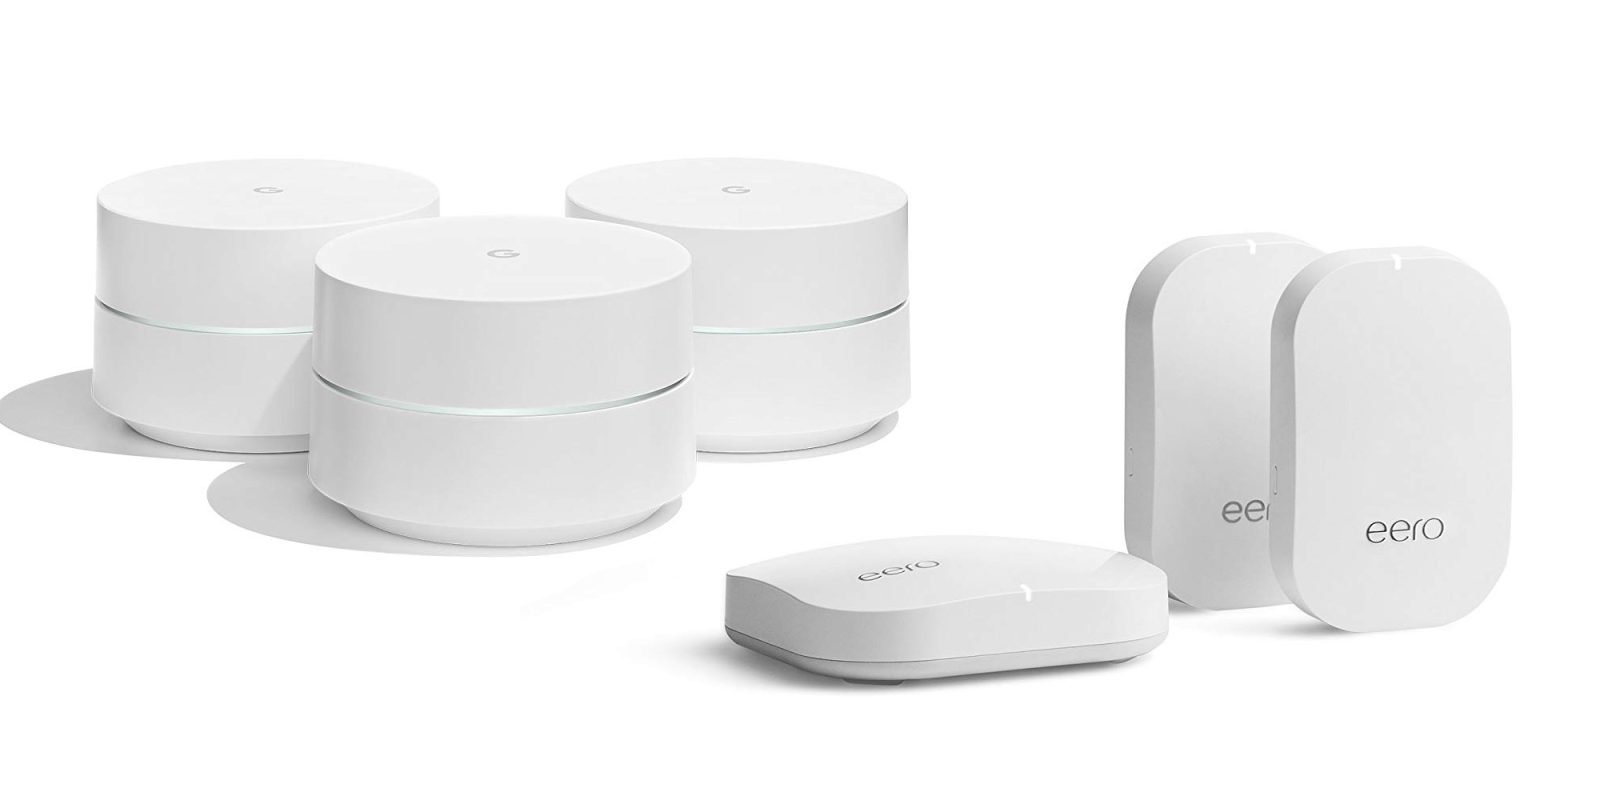 Prime Day yields an Amazon low on Google WiFi at $229 + eero bundles from $149